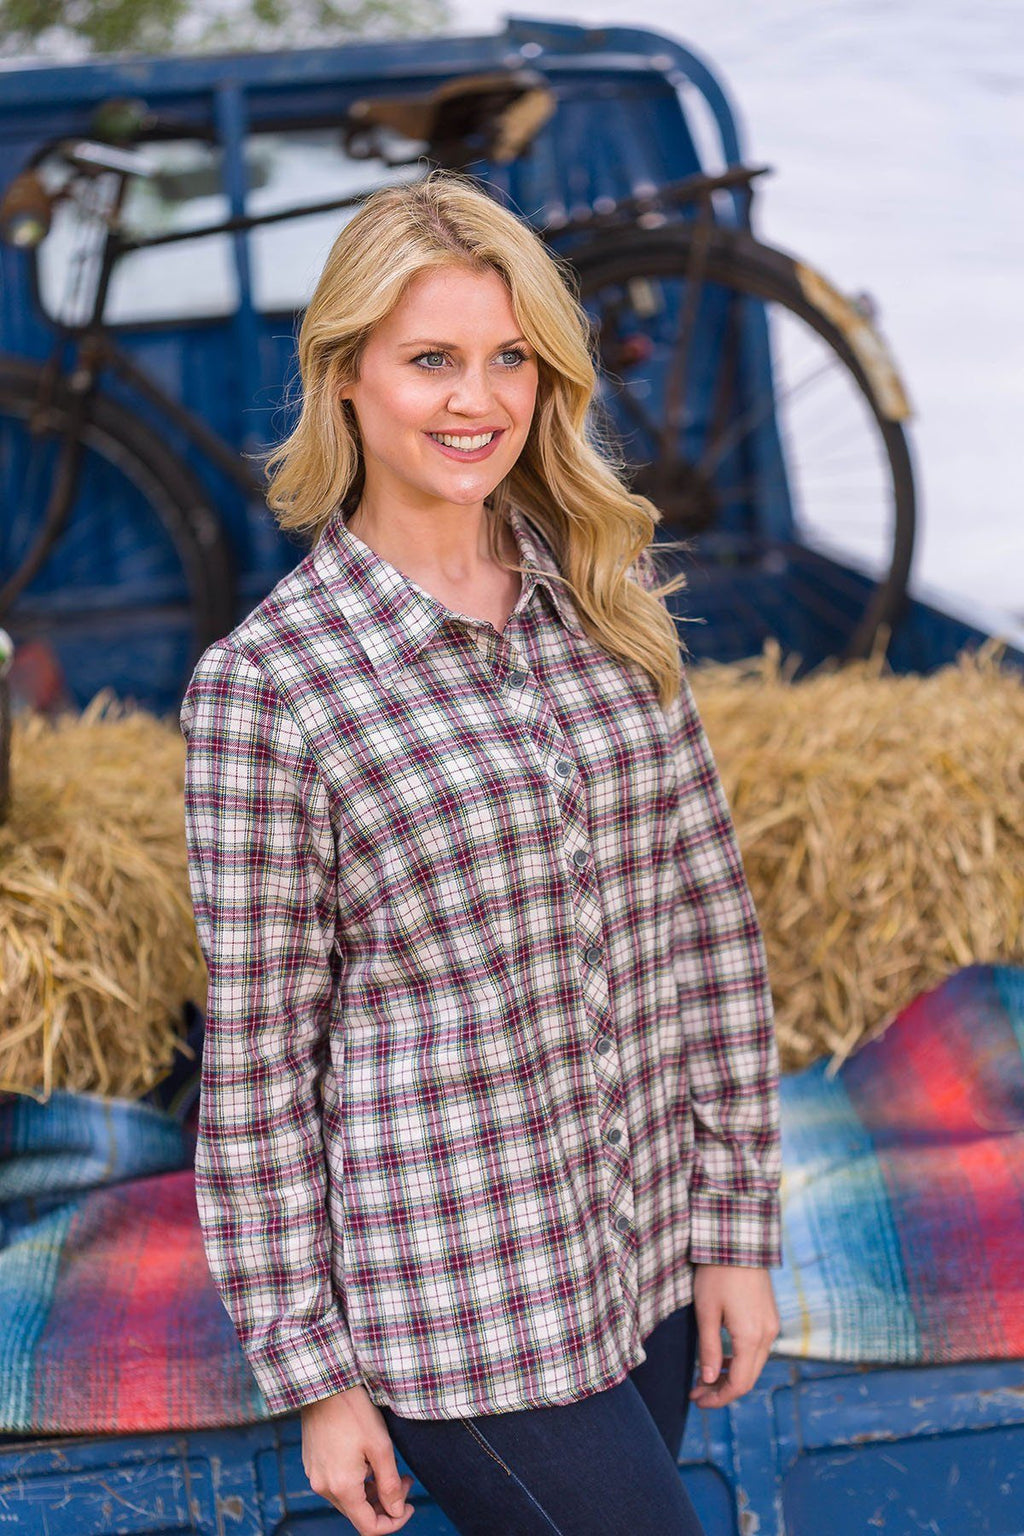 Collar Shirt Eskra Ladies Cotton Flannel Maroon Check (LV7) Collar Shirt Lee Valley Ireland